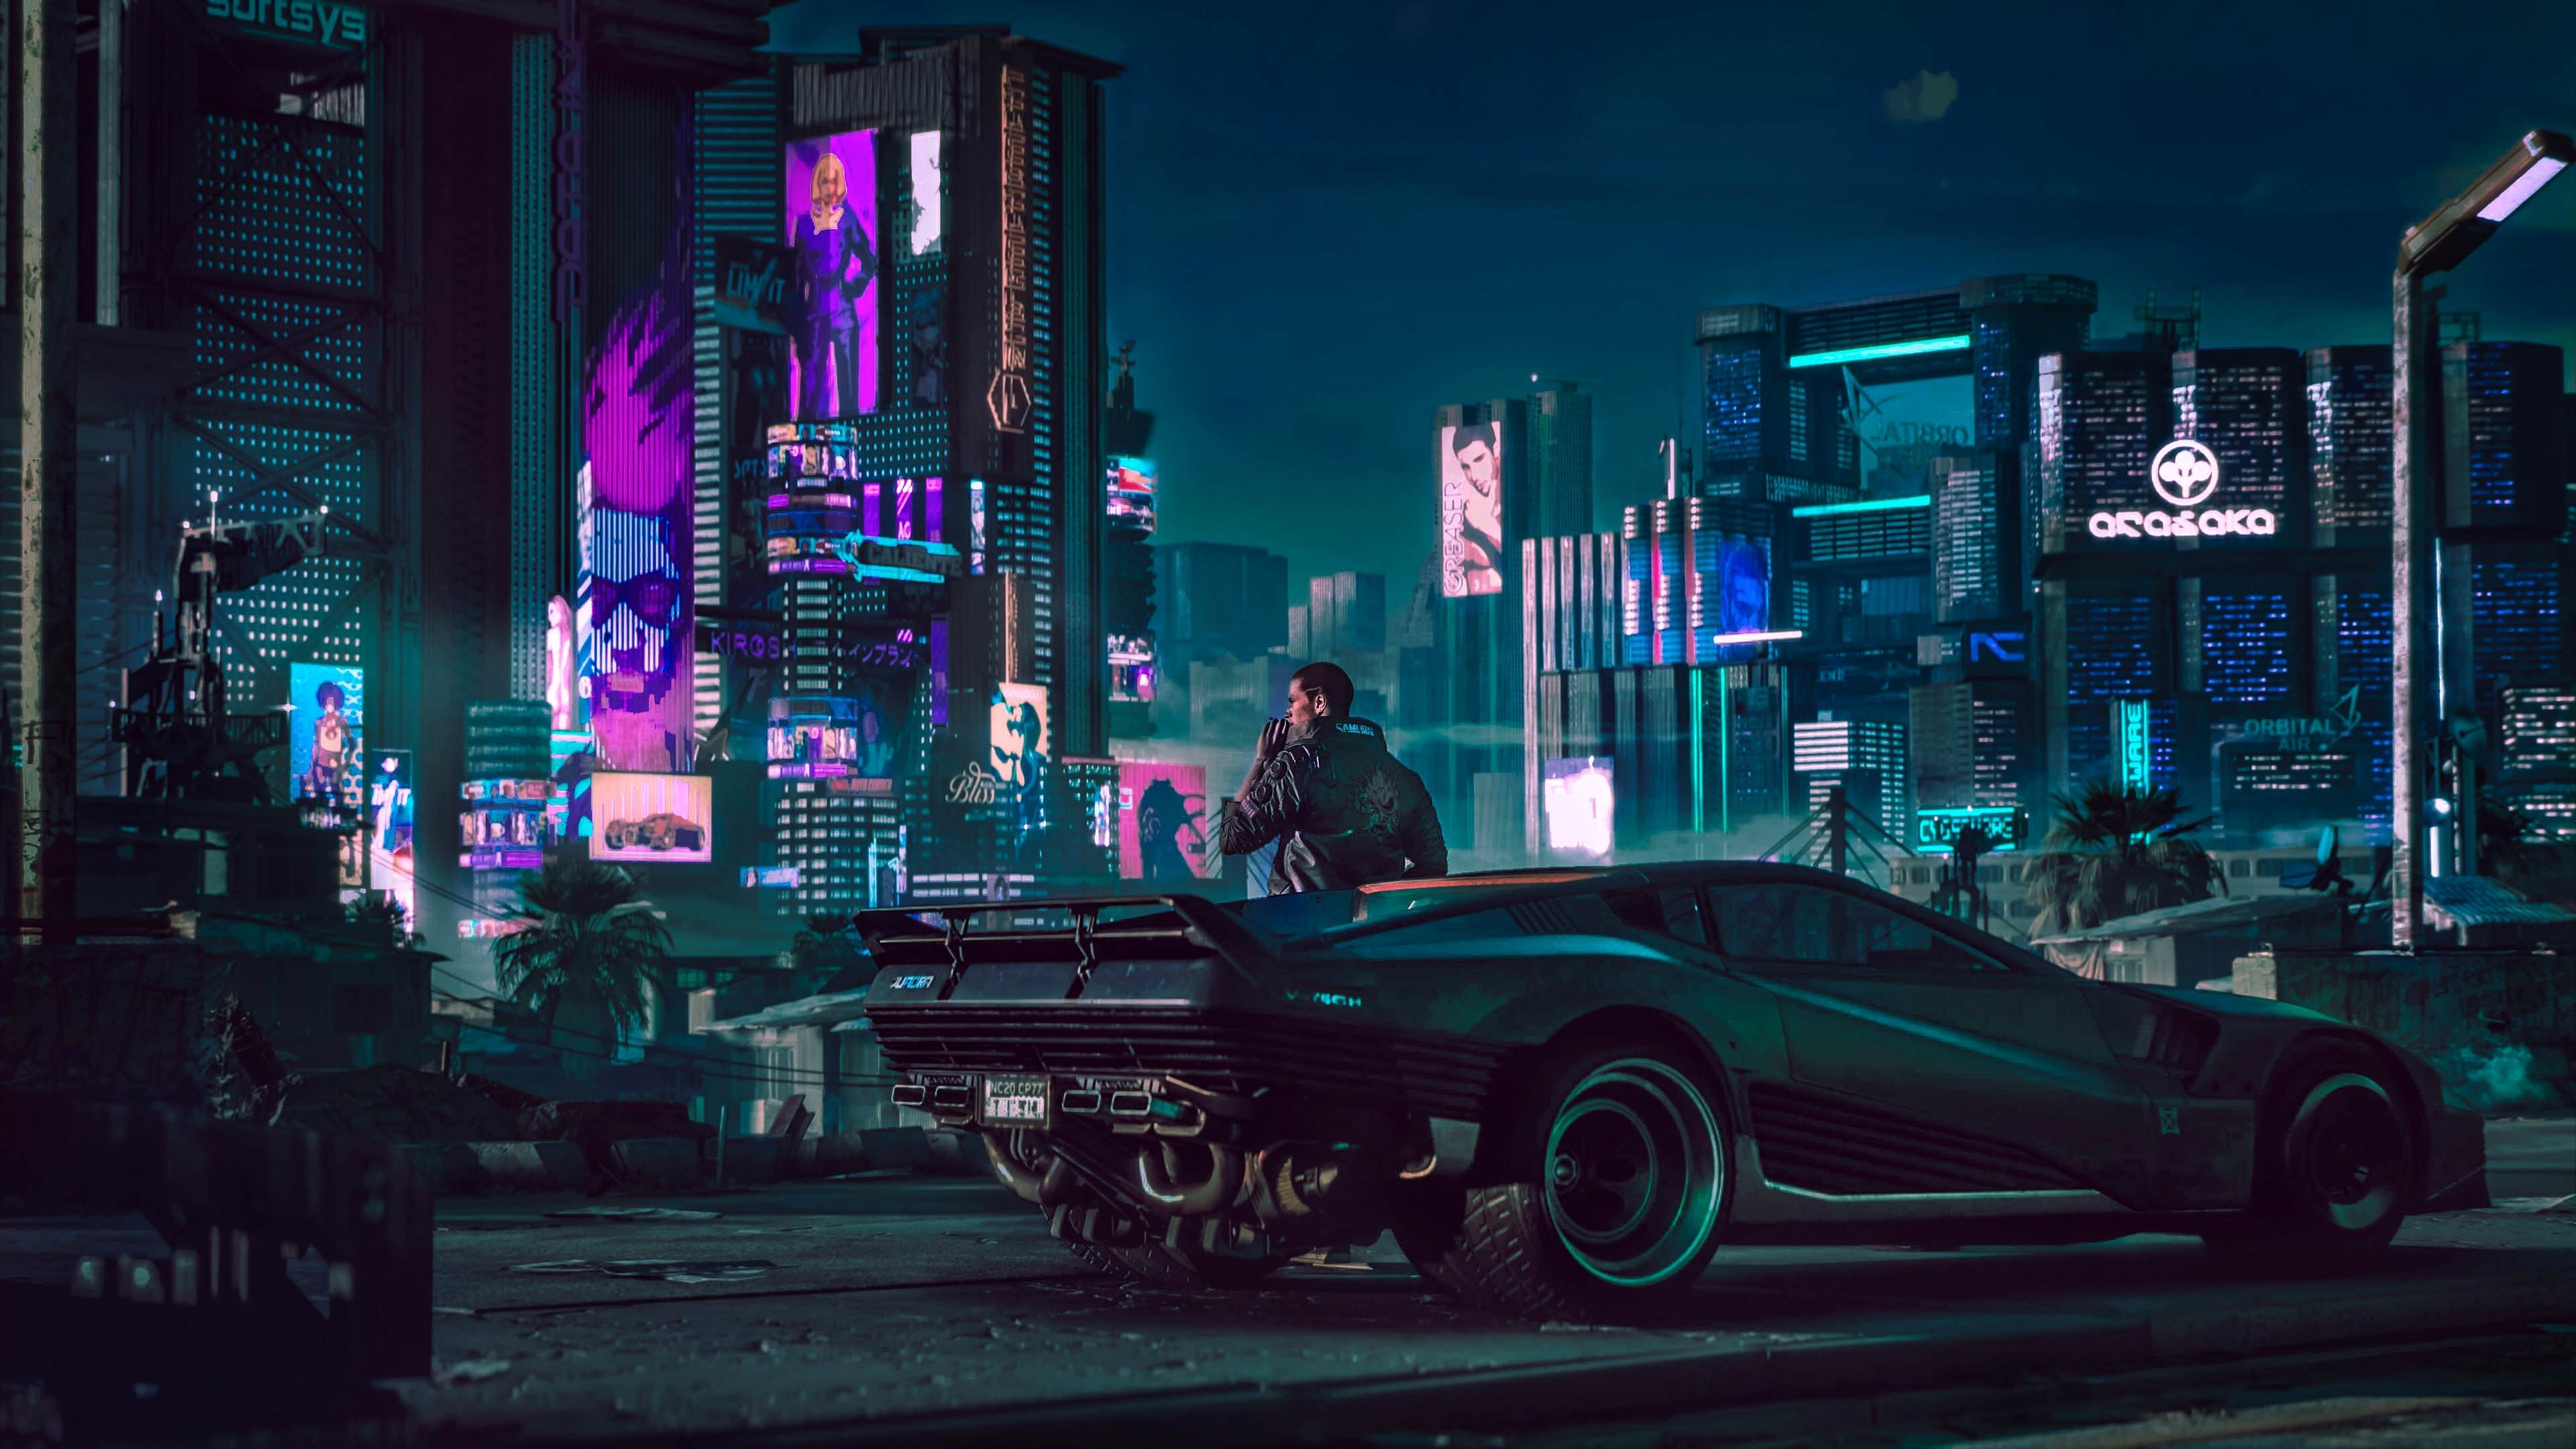 2018 Cyberpunk 2077 4k Hd Games 4k Wallpapers Images Backgrounds Photos And Pictures